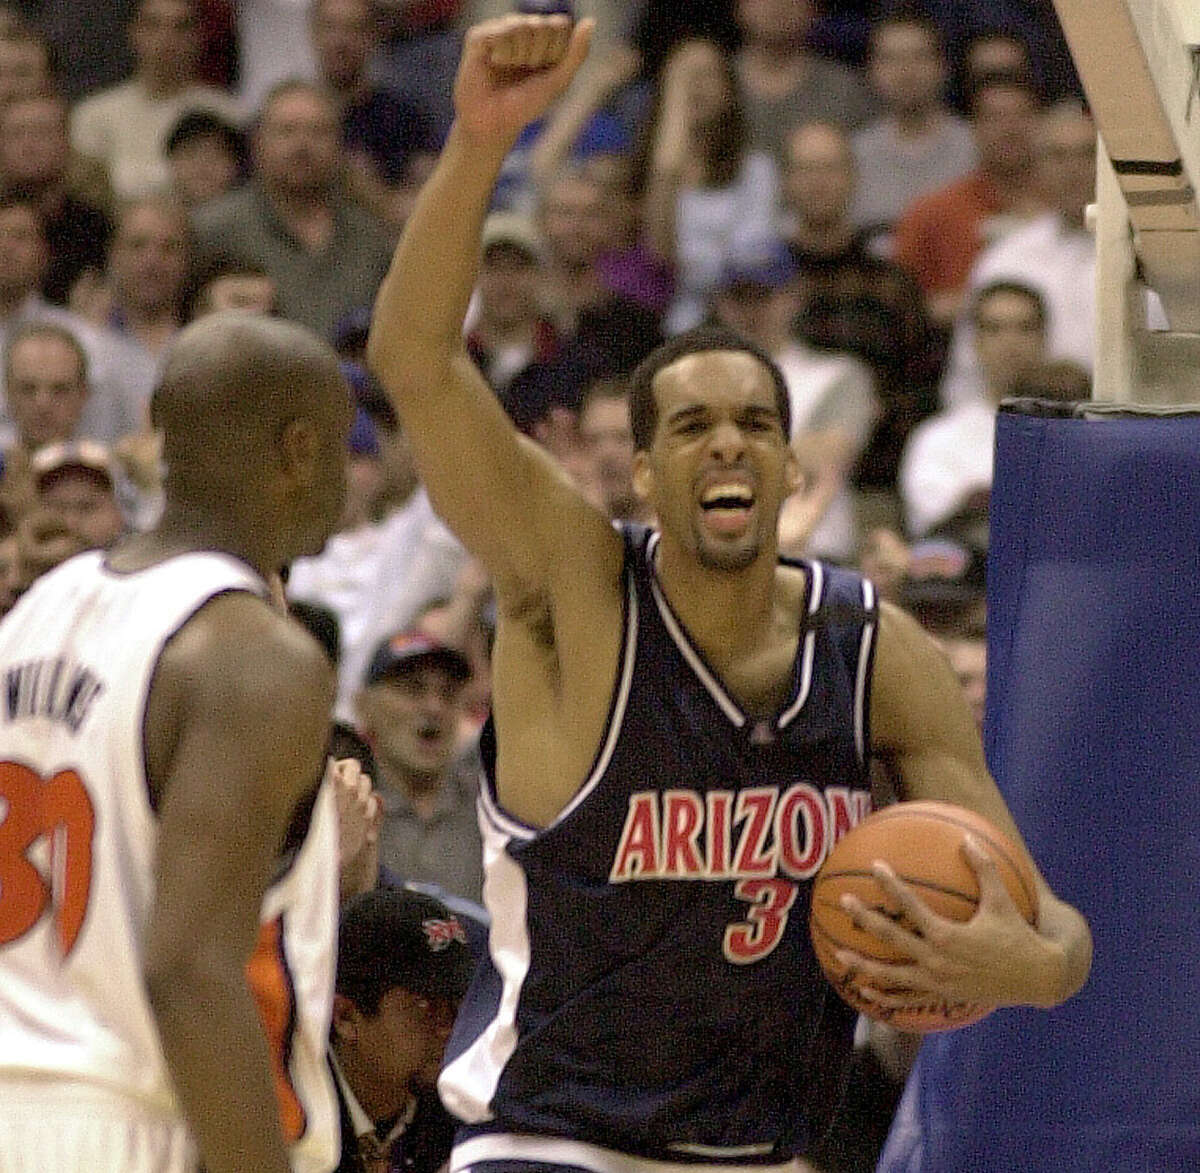 2001 Midwest RegionalSemifinals: Illinois 80, Kansas 64; Arizona 66, Ole Miss 56 - As the Illini coach, Bill Self roughed up his future team, forcing a ton of turnovers and riding 30 points from Frank Williams. Richard Jefferson and Loren Woods combined to score 25 of Arizona's second-half points to overcome a sluggish start. Final: Arizona 87, Illinois 81 - The Wildcats scored 43 points on free throws, as Gilbert Arenas led Arizona with 21 points and Jefferson, the future Spurs forward, helped hold Williams in check. Attendance: Semis (29,962); final (30,212)Photo: Loren Woods and a stacked Arizona team advanced to the 2001 Final Four.